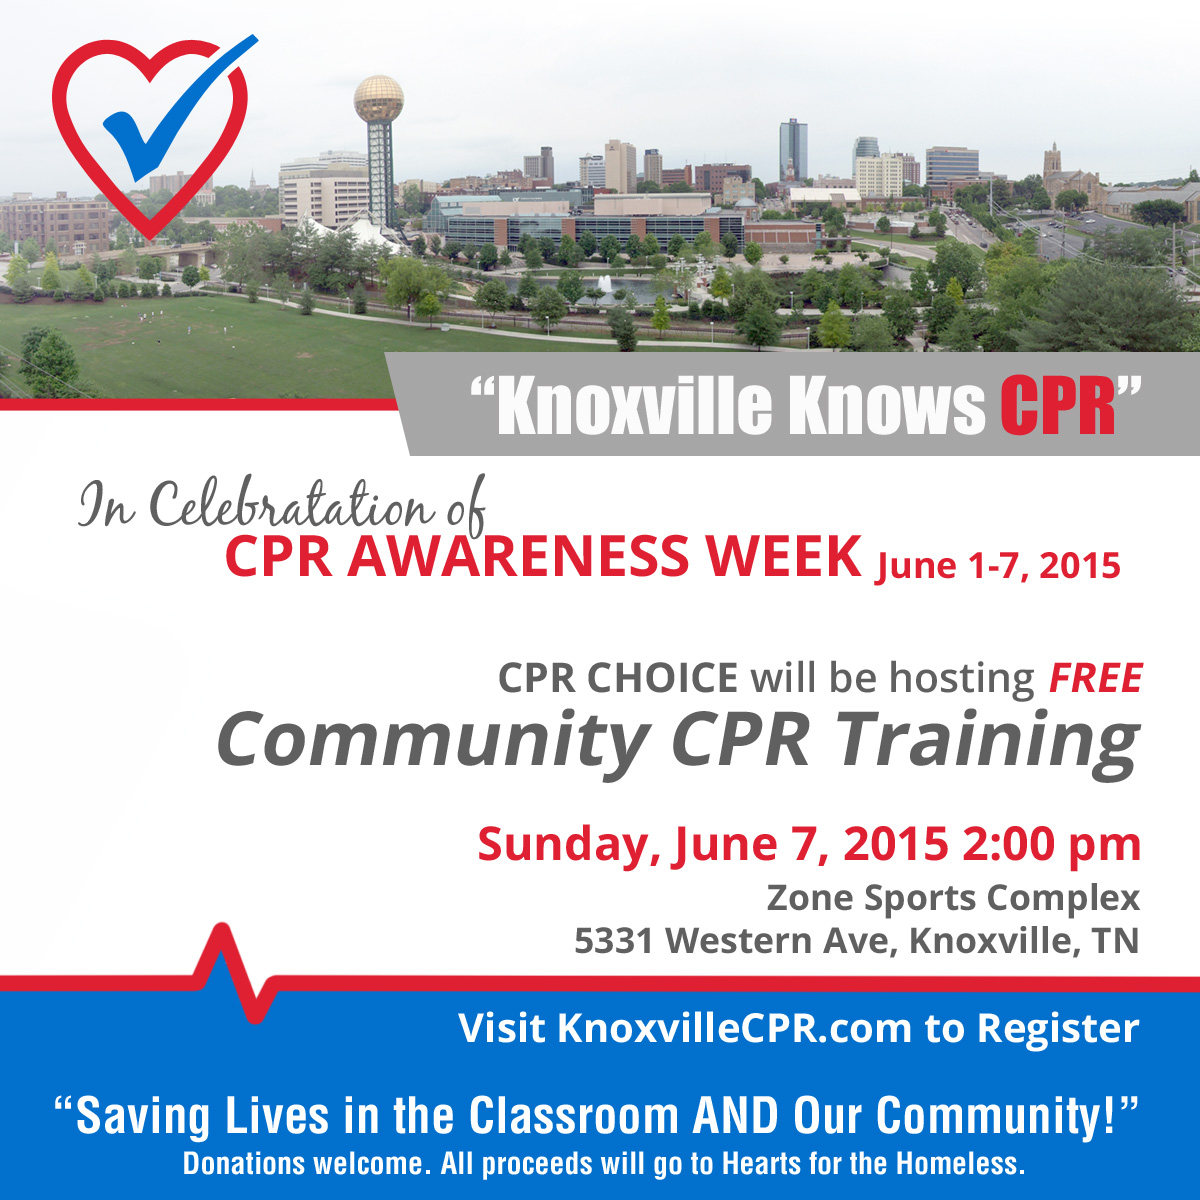 Cheryl smith author at knoxville cpr by cpr choice knoxville cpr knoxville knows cpr xflitez Gallery